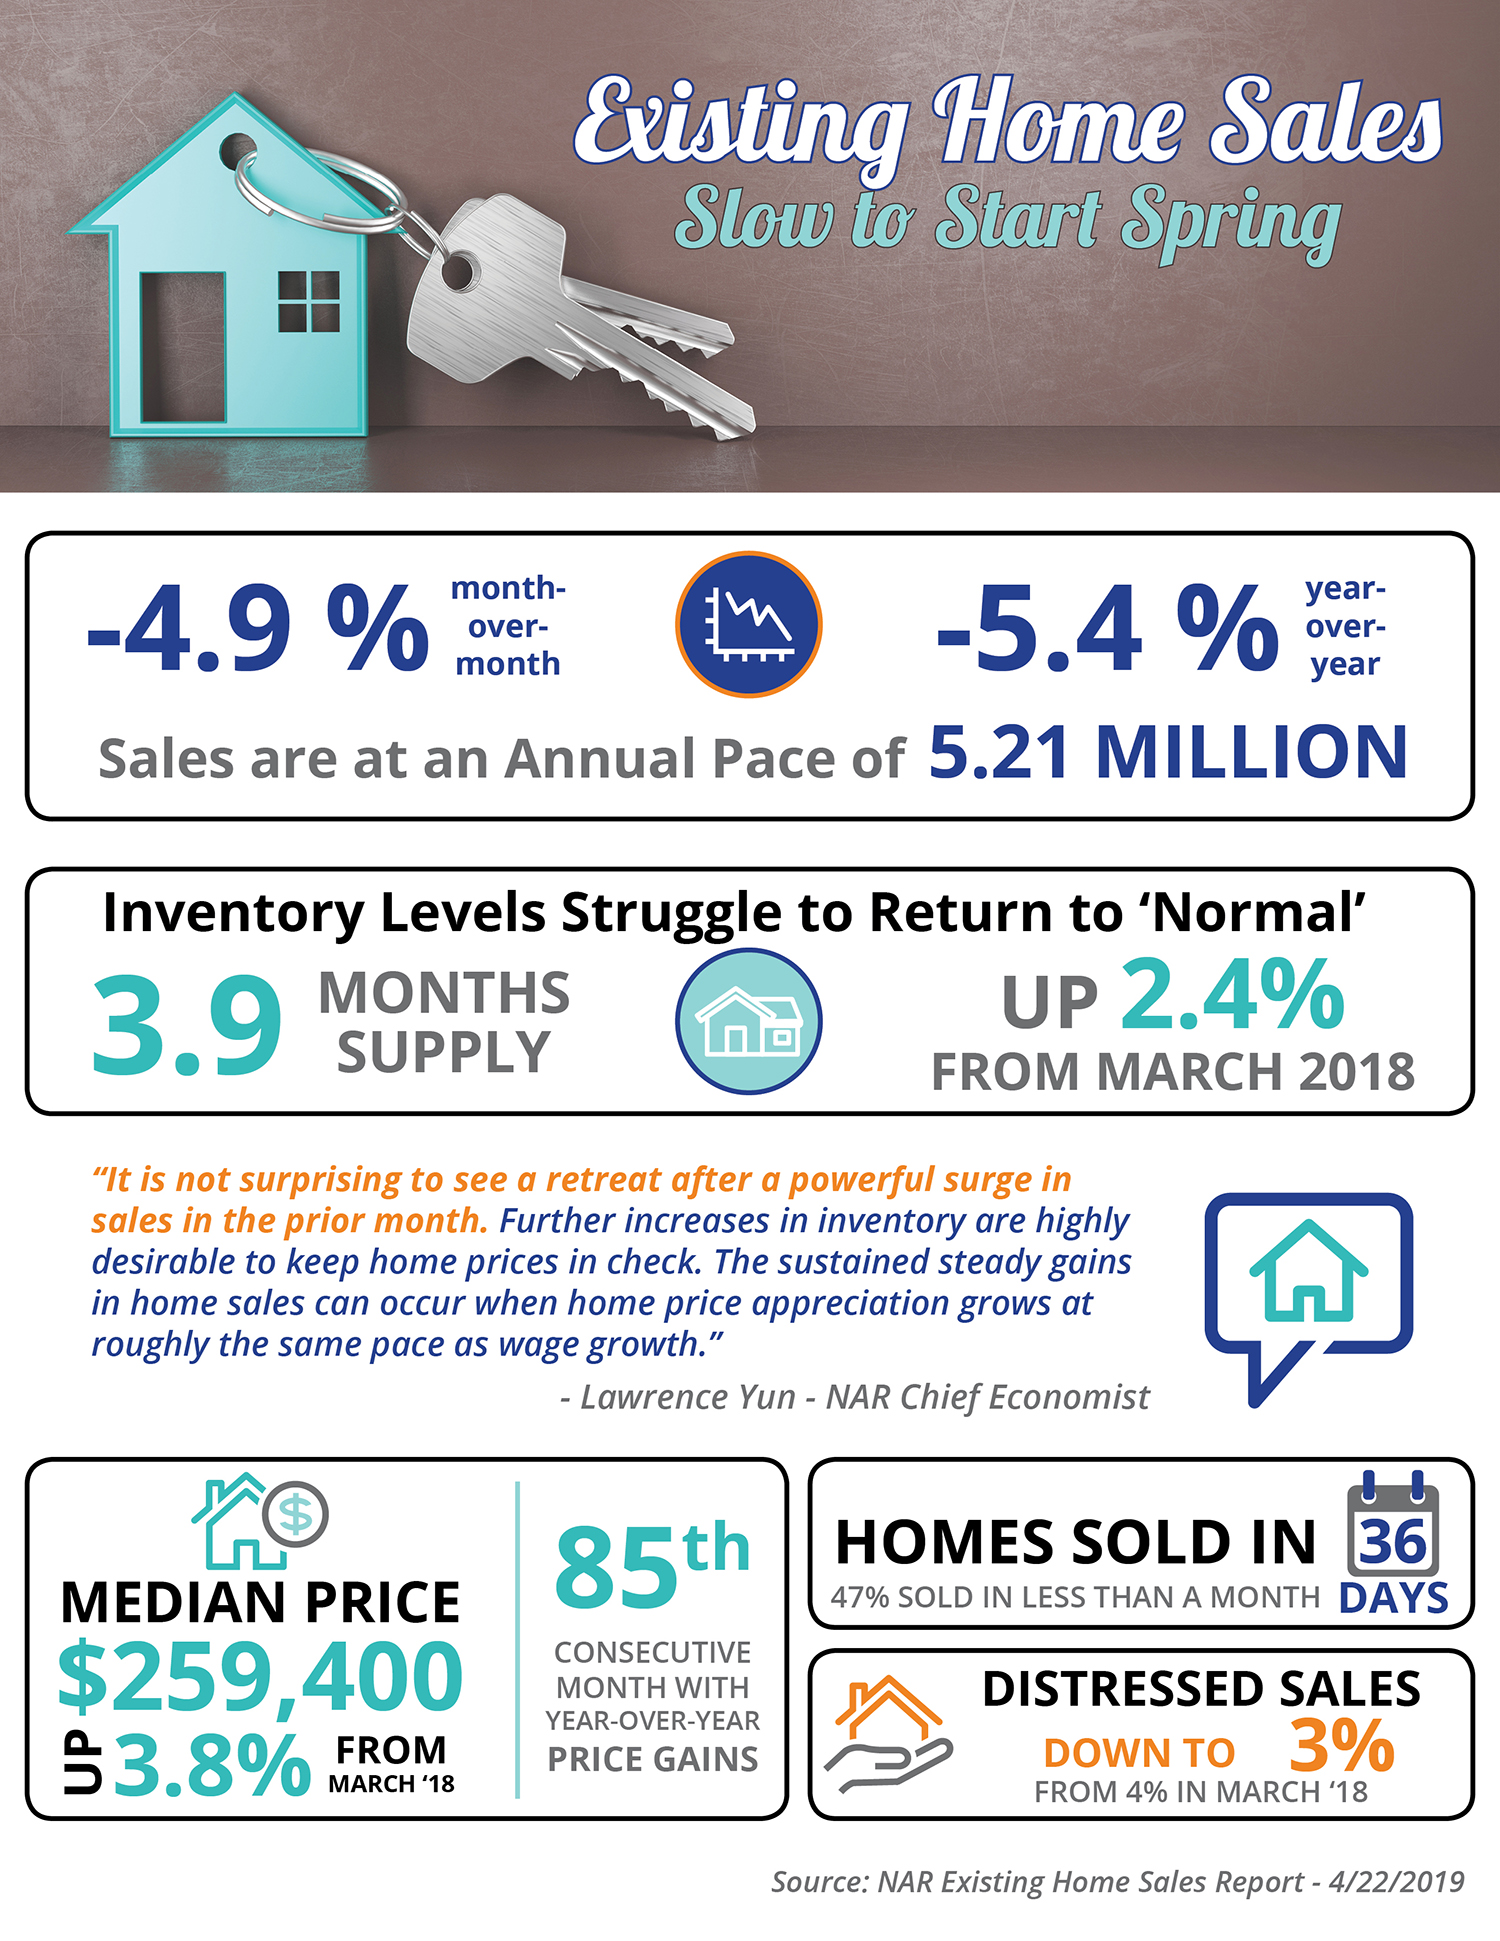 Existing Home Sales Slow to Start Spring [INFOGRAPHIC] | Bridge Builders